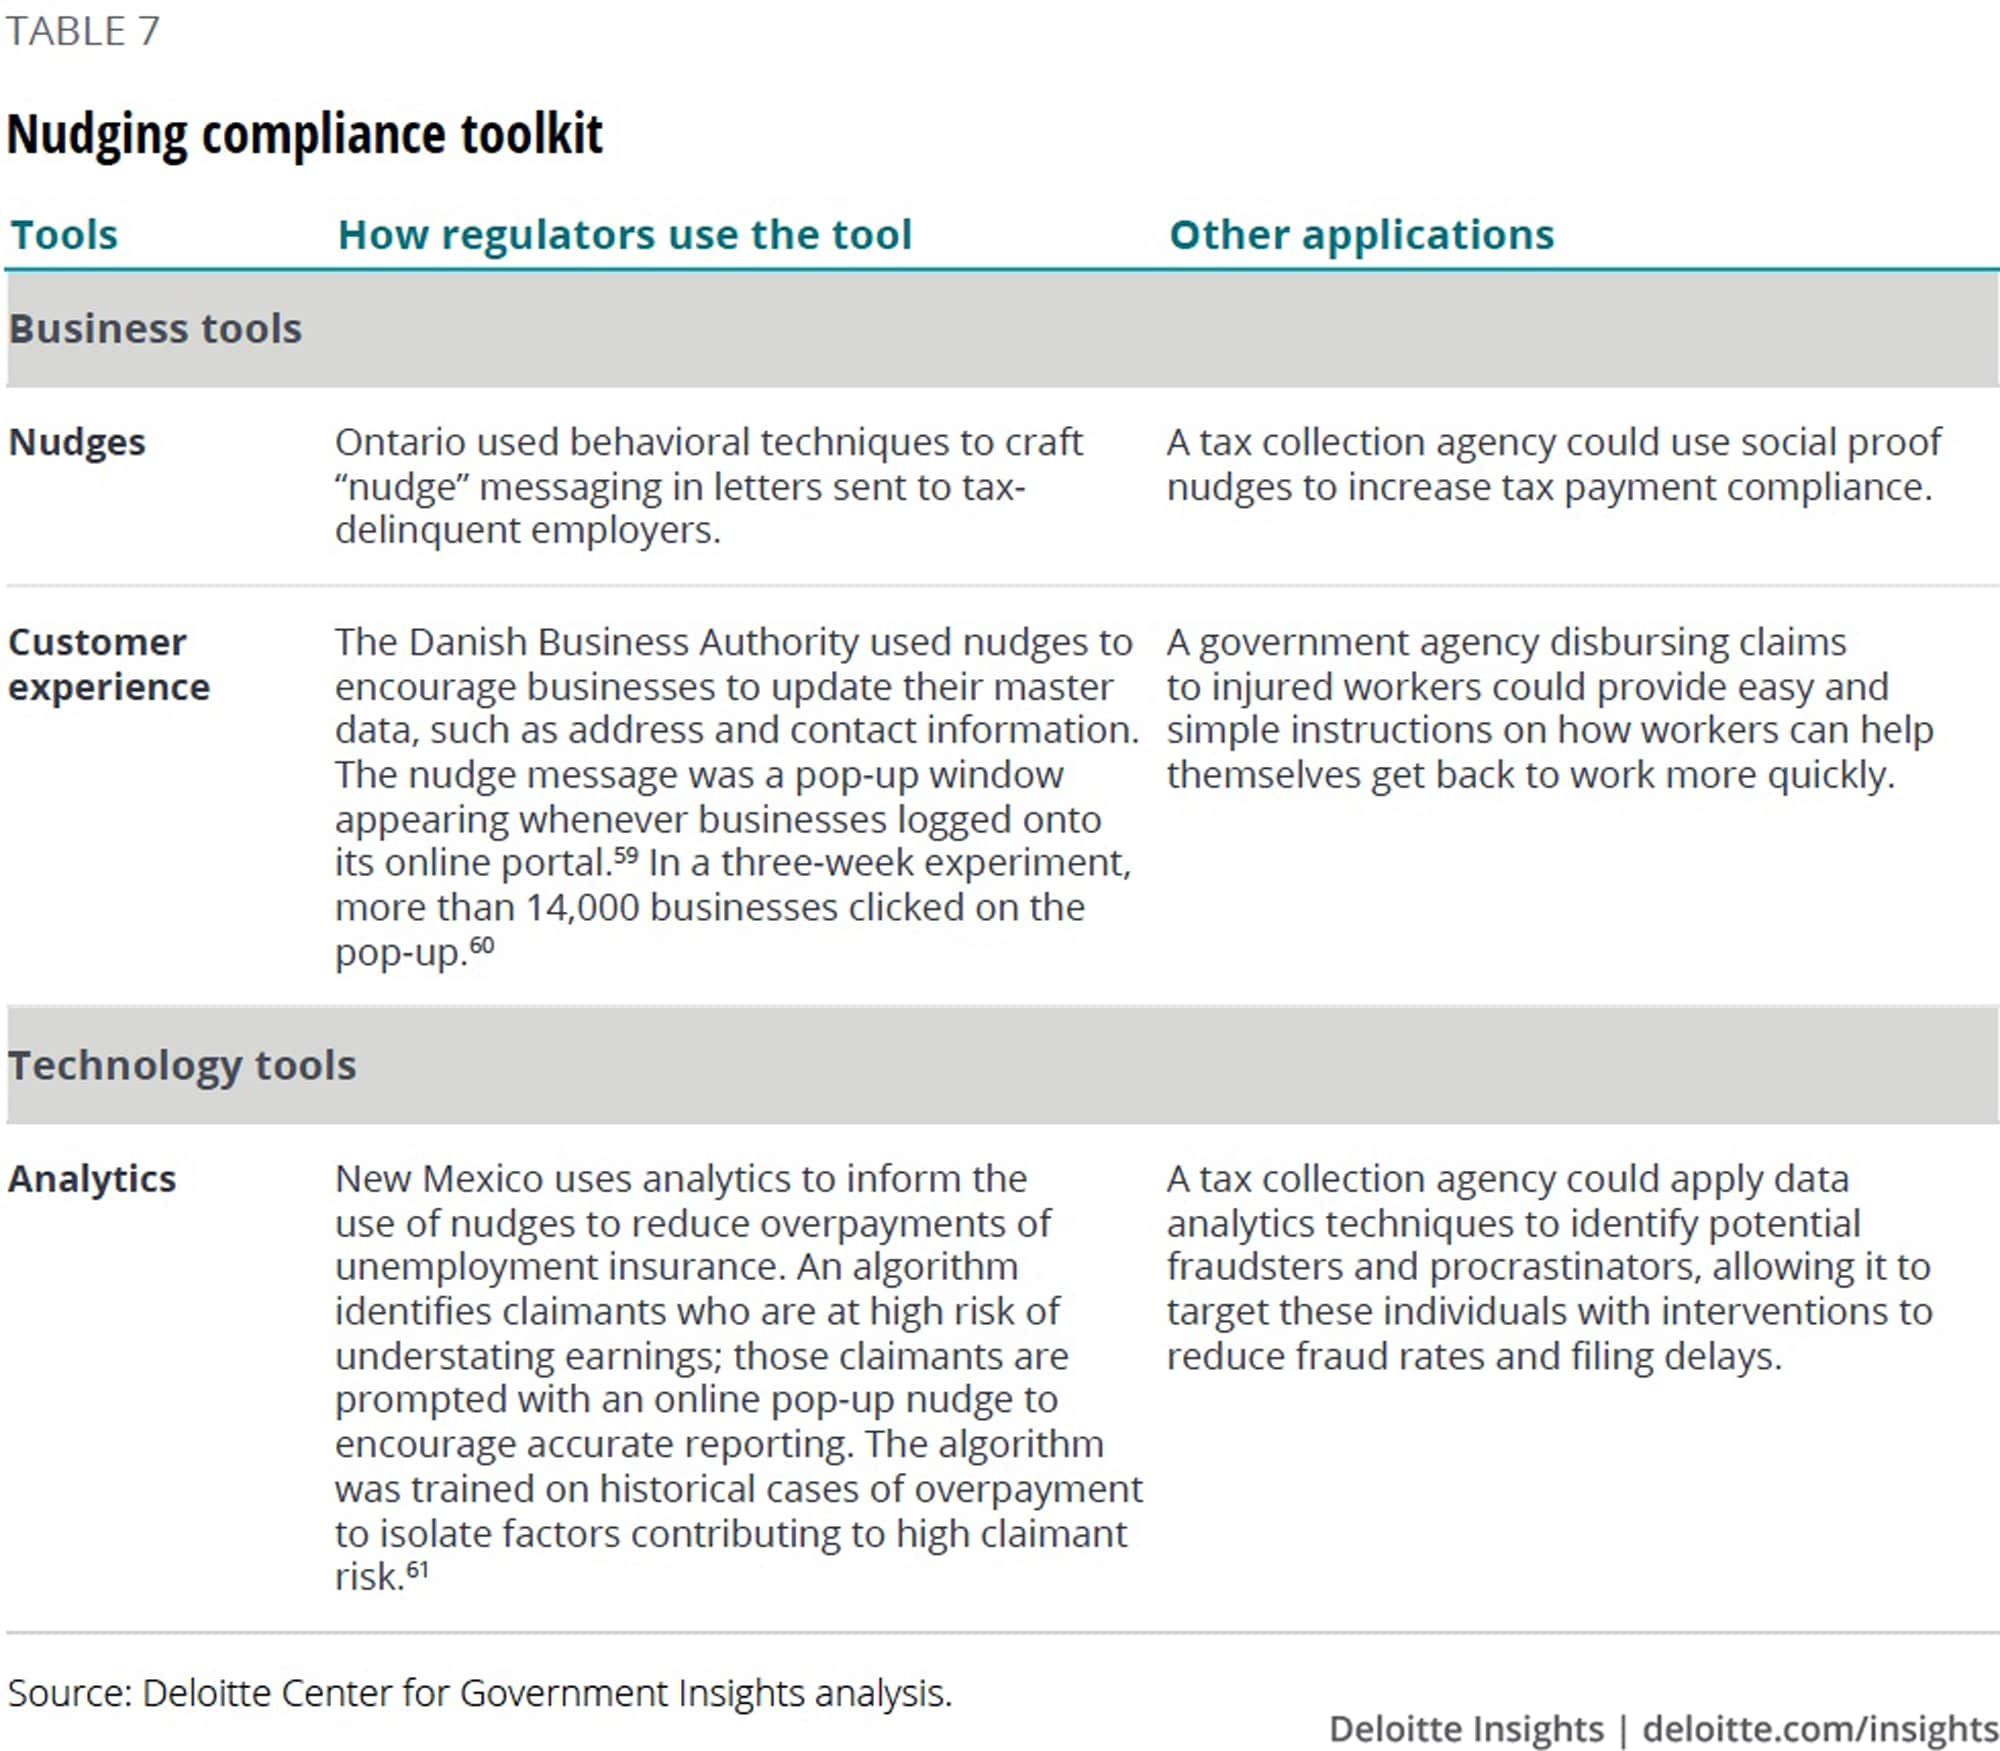 Nudging compliance toolkit